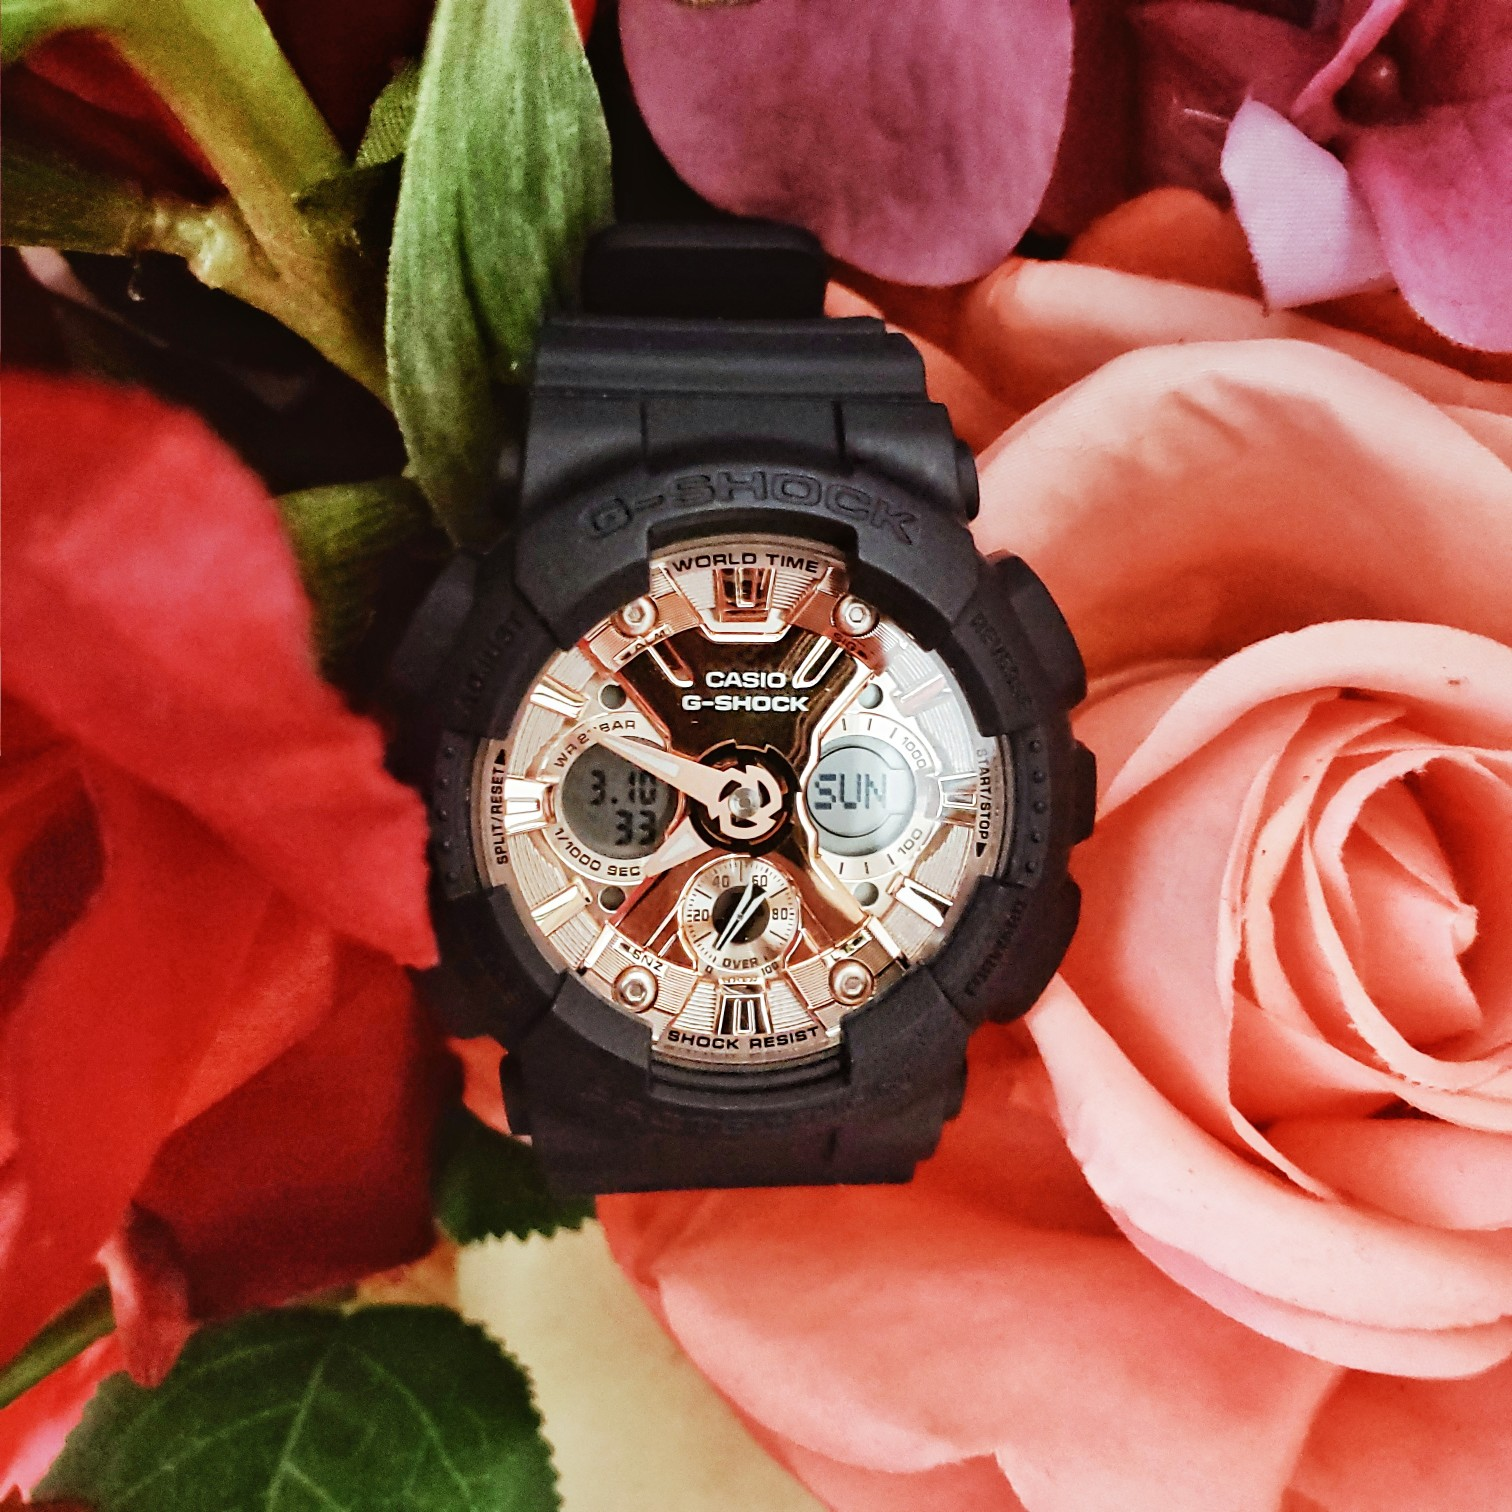 G-SHOCK S Series GMAS120MF-2A2 Watch from Casio